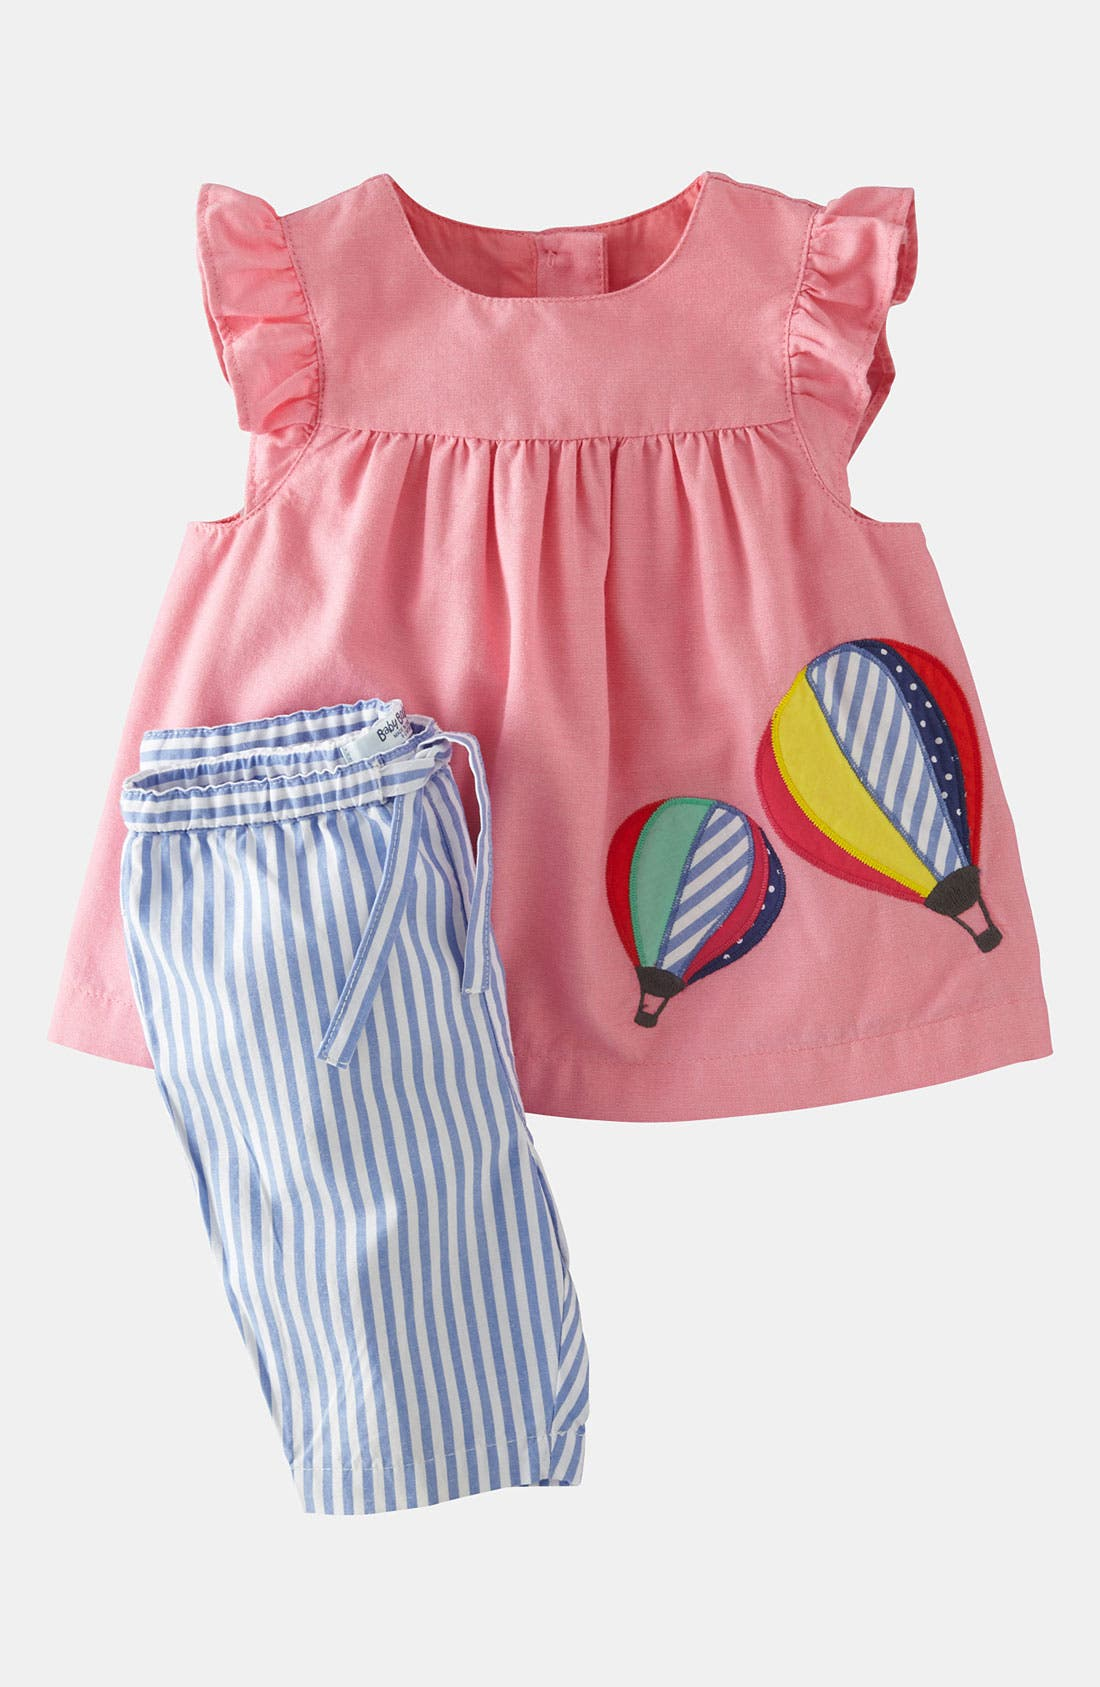 Alternate Image 1 Selected - Mini Boden Appliqué Dress & Leggings (Baby Girls)